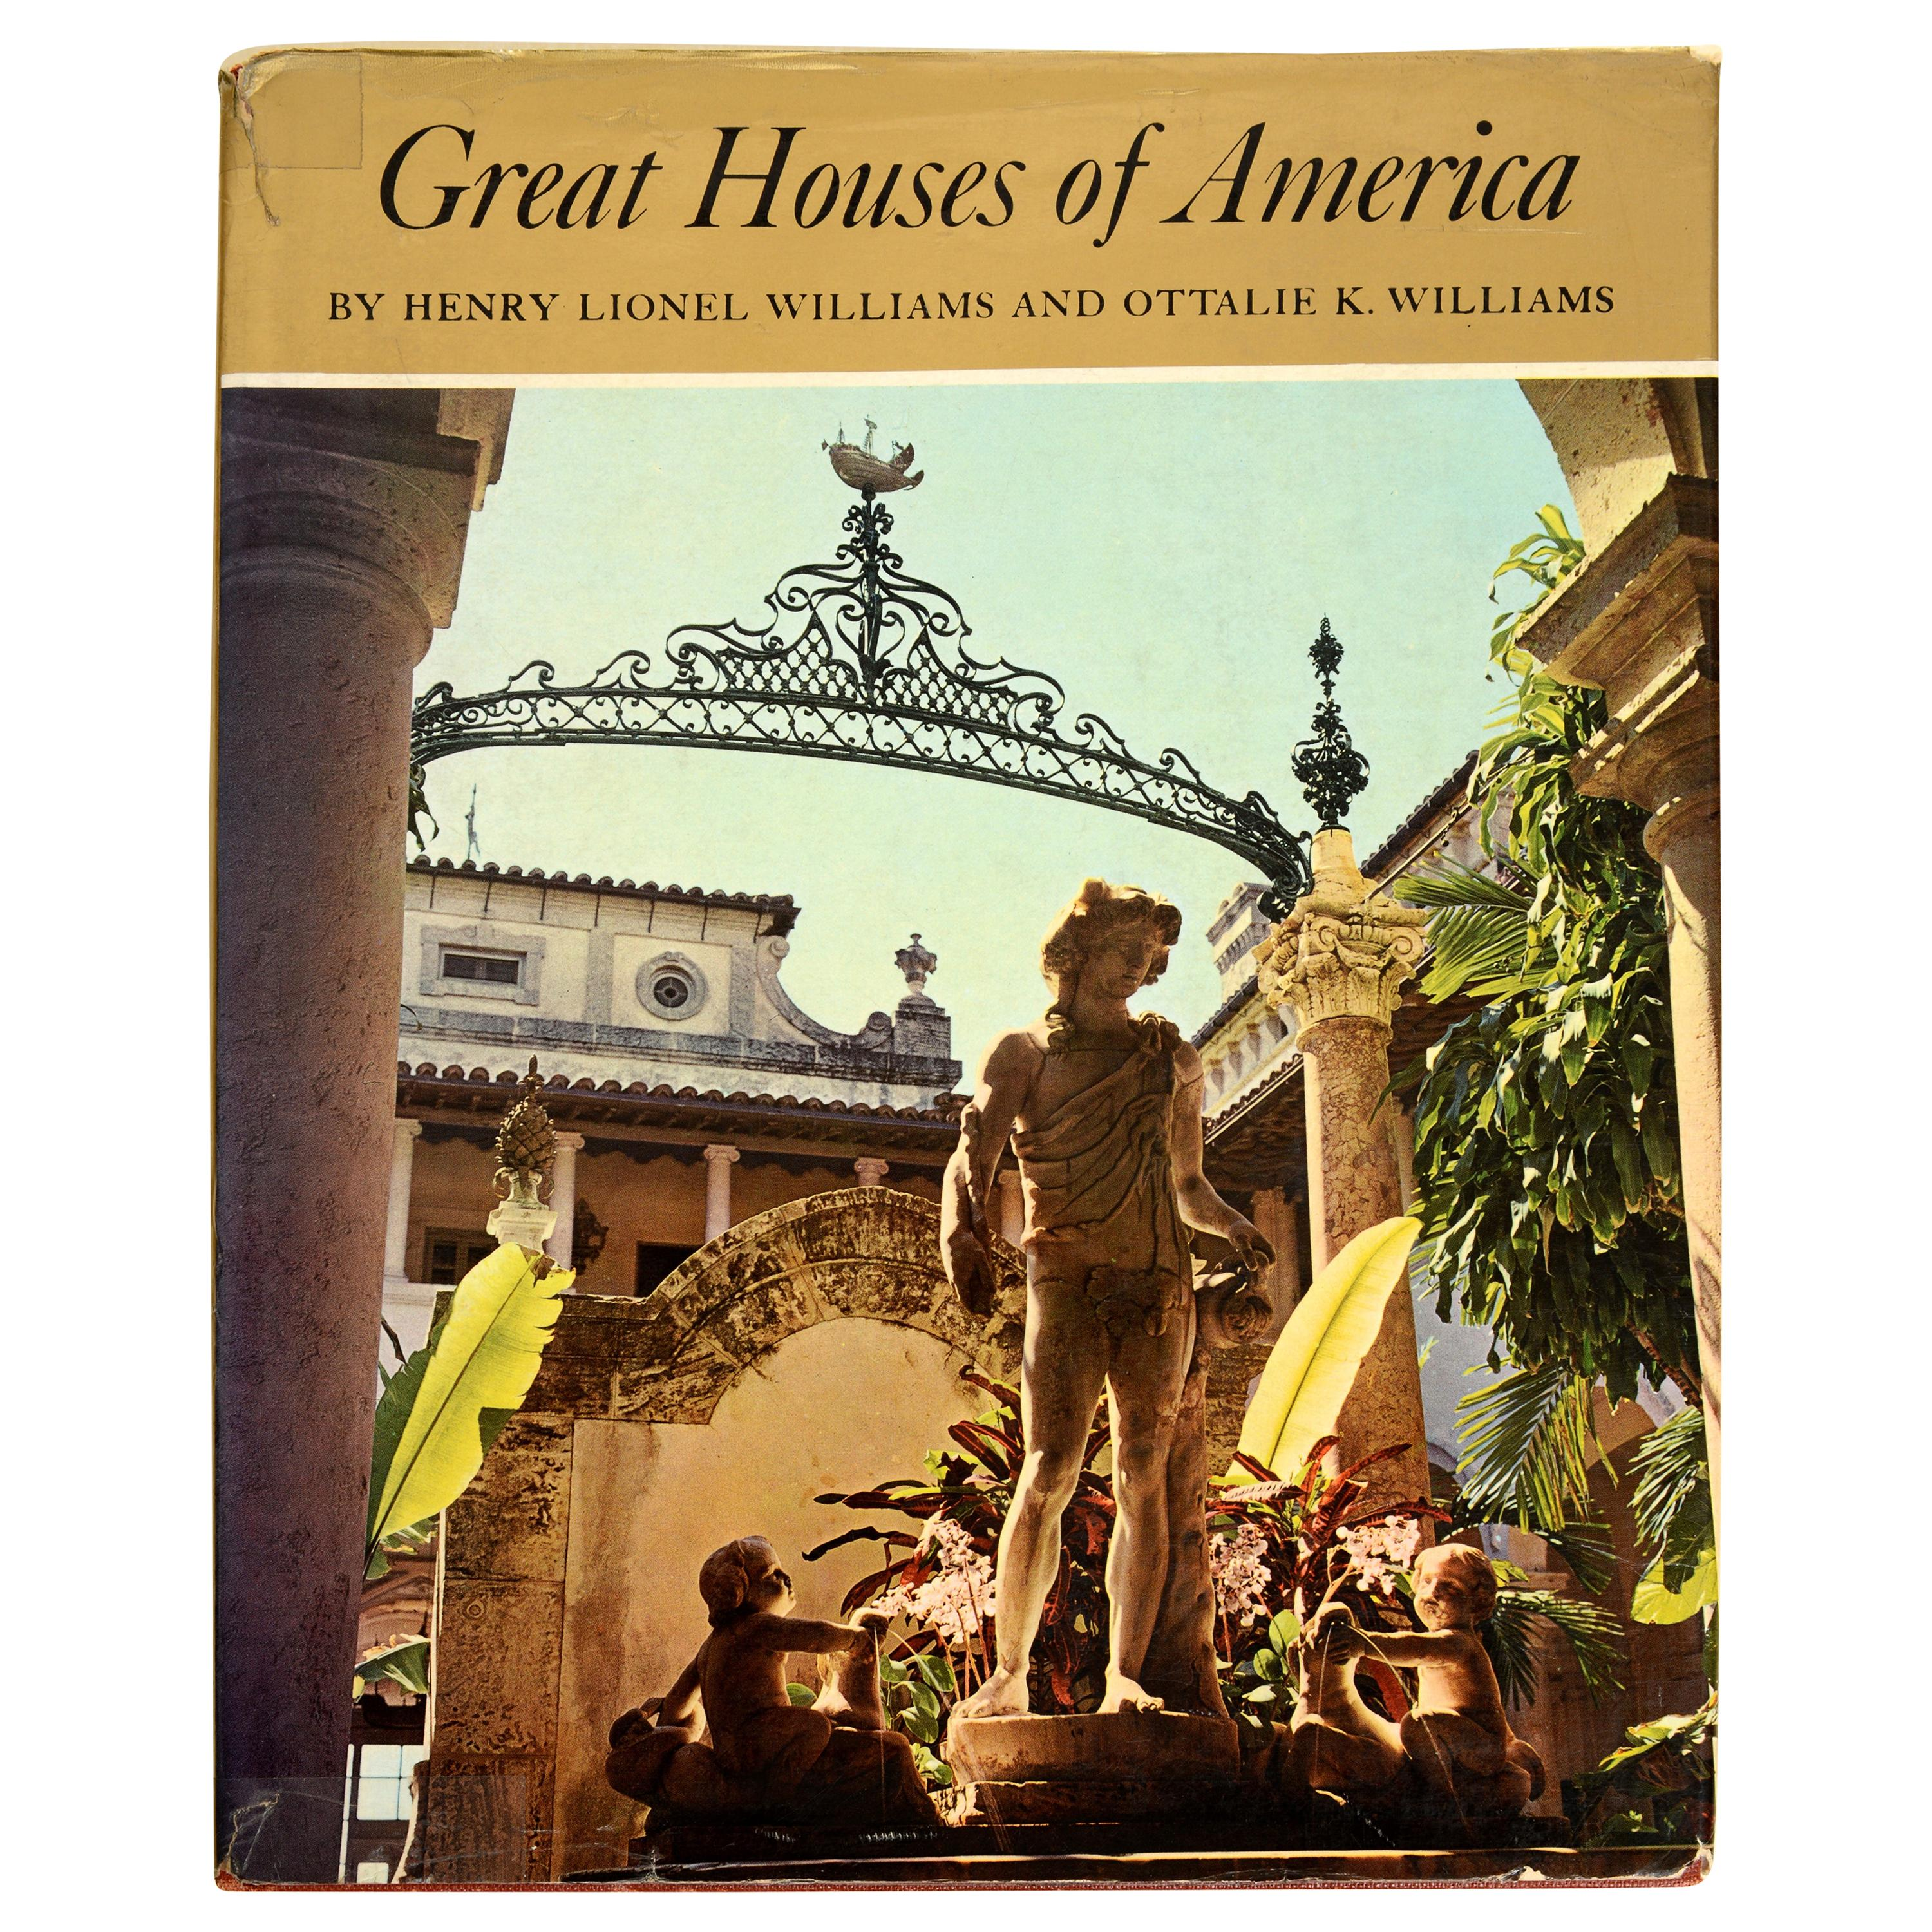 Great Houses Of America by Henry Lionel Williams & Ottalie K. Williams, 1st Ed